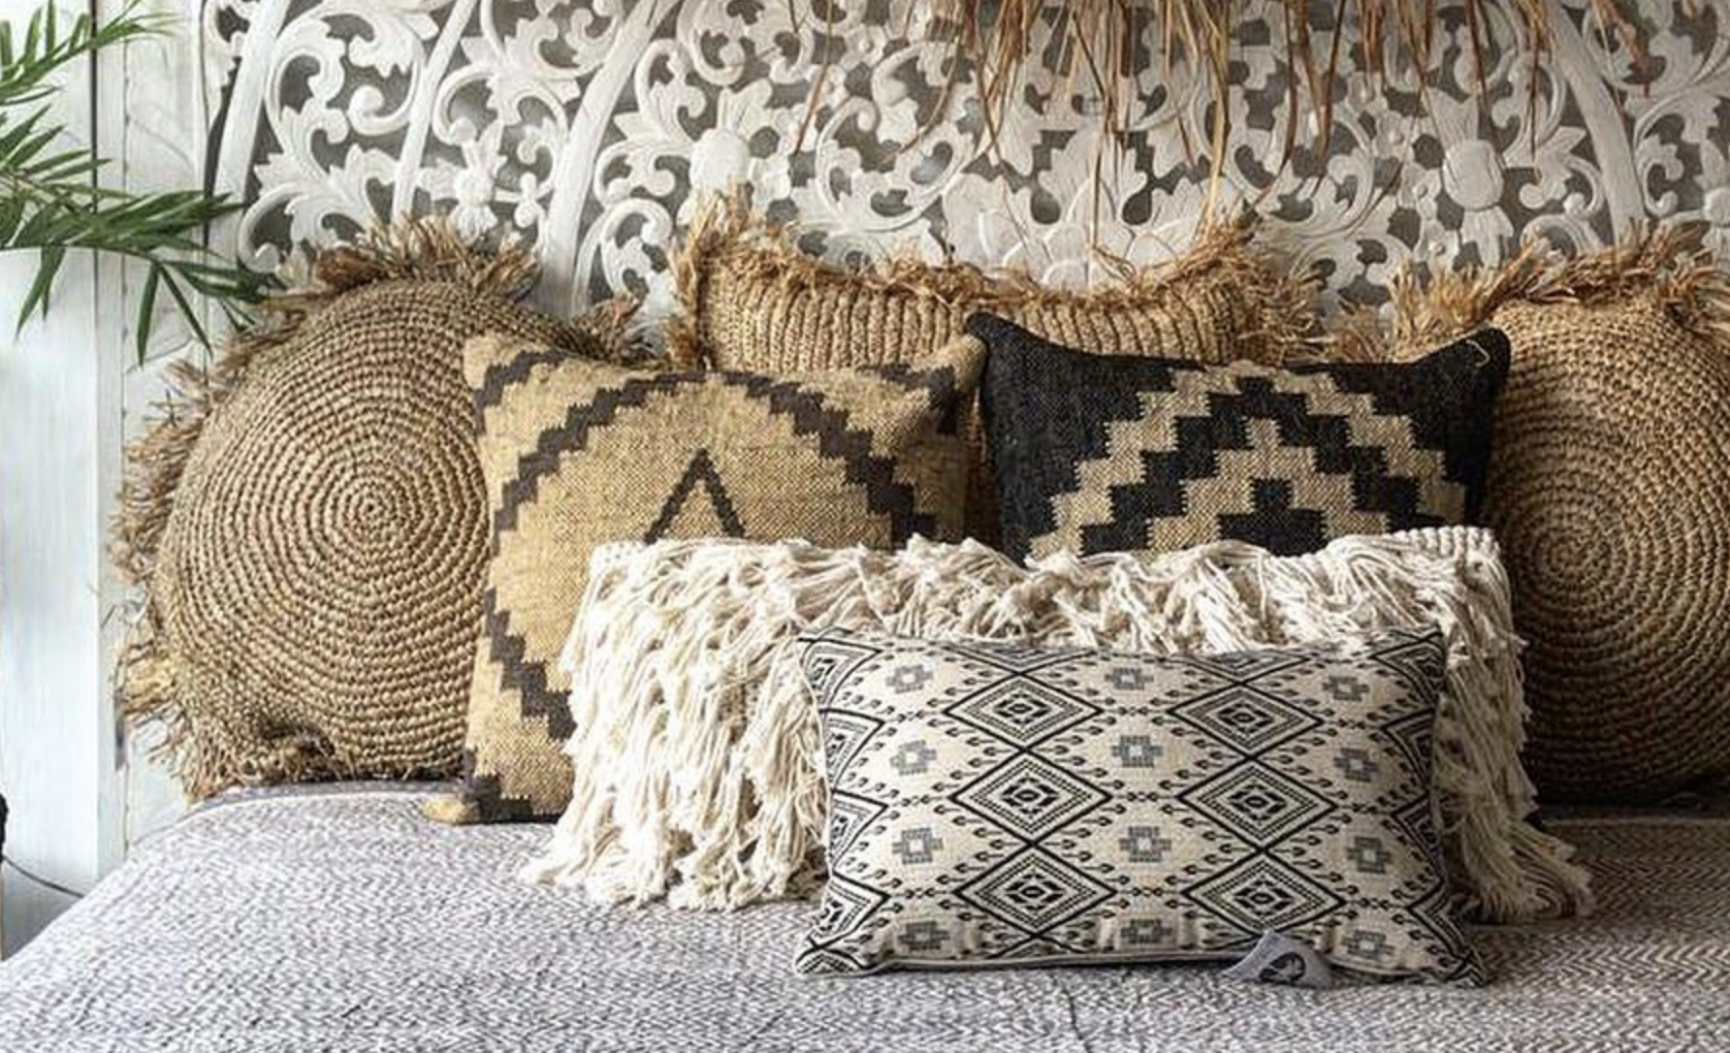 Bali's Best Stores For Shopping For Homeware And Home Decor ...